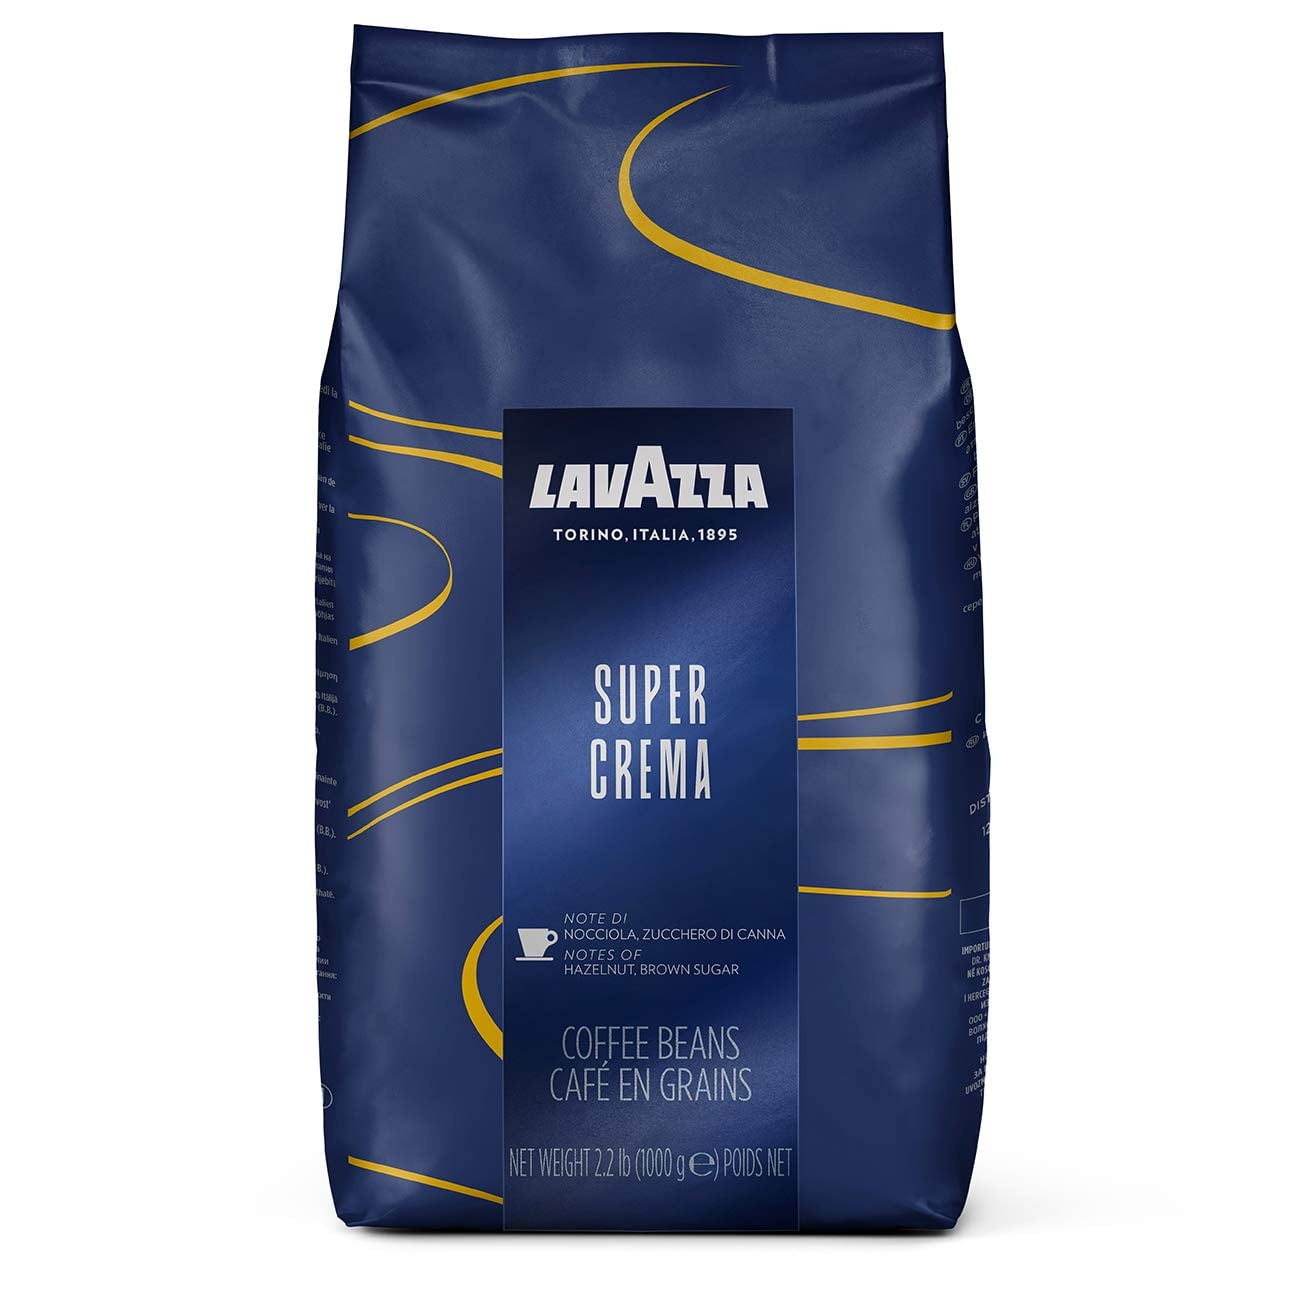 Lavazza Super Crema Whole Bean Coffee Blend ( pack of 1 ) $12.19 with SS @Amazon + FSSS